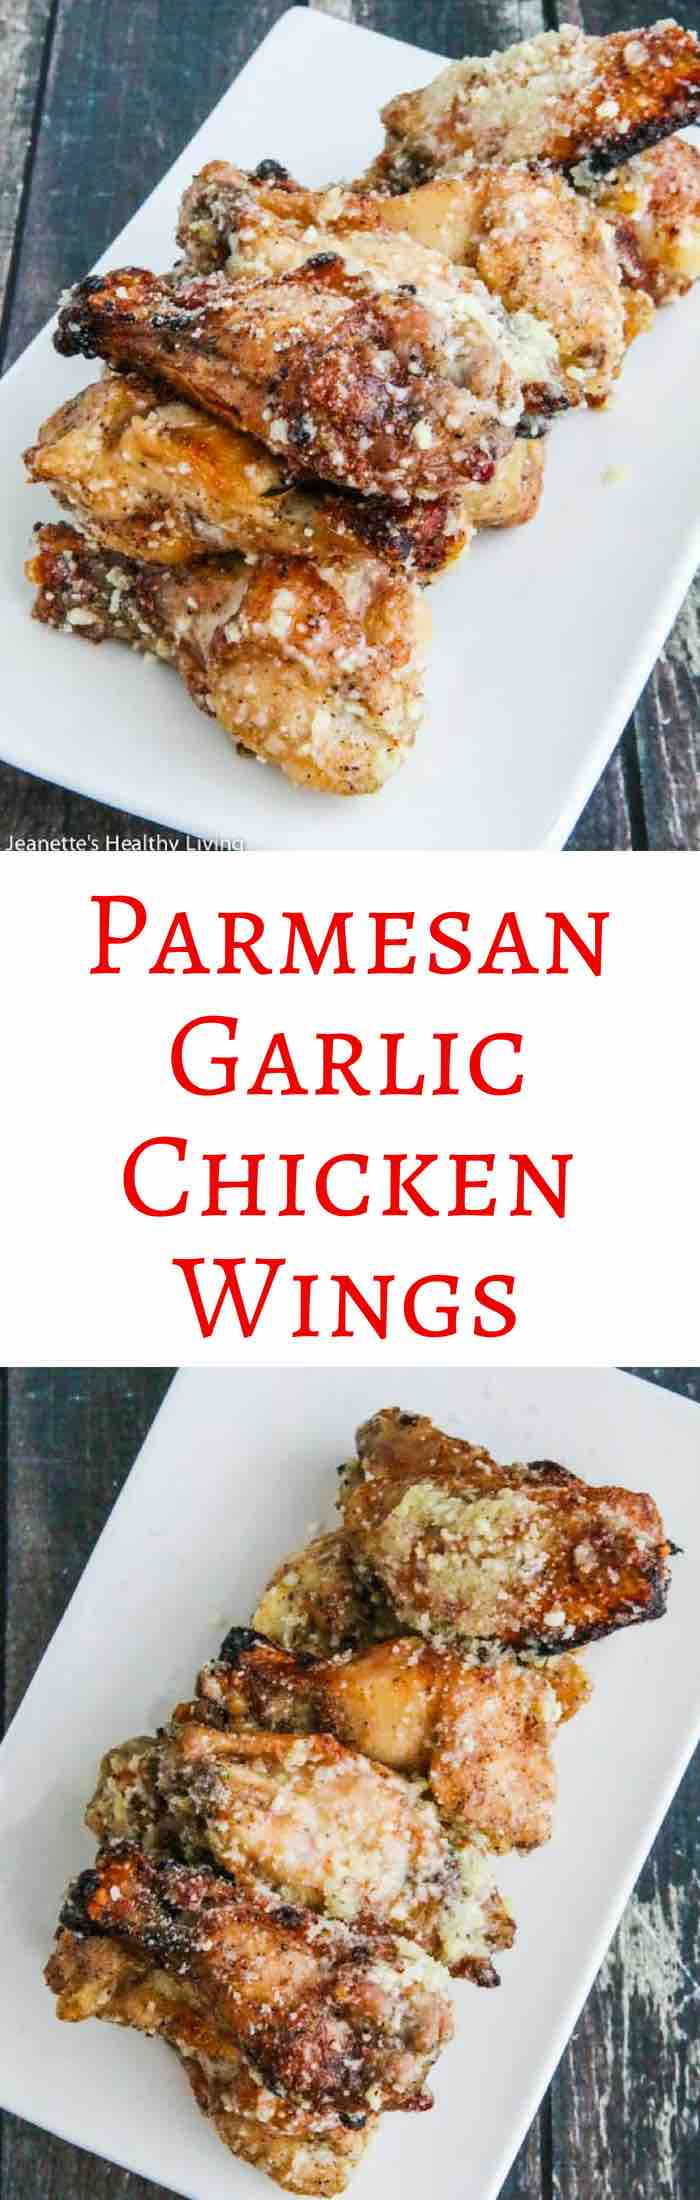 Parmesan Garlic Chicken Wings - garlicky and cheesy, these wings are lip smacking delicious. Made in oil-less fryer.